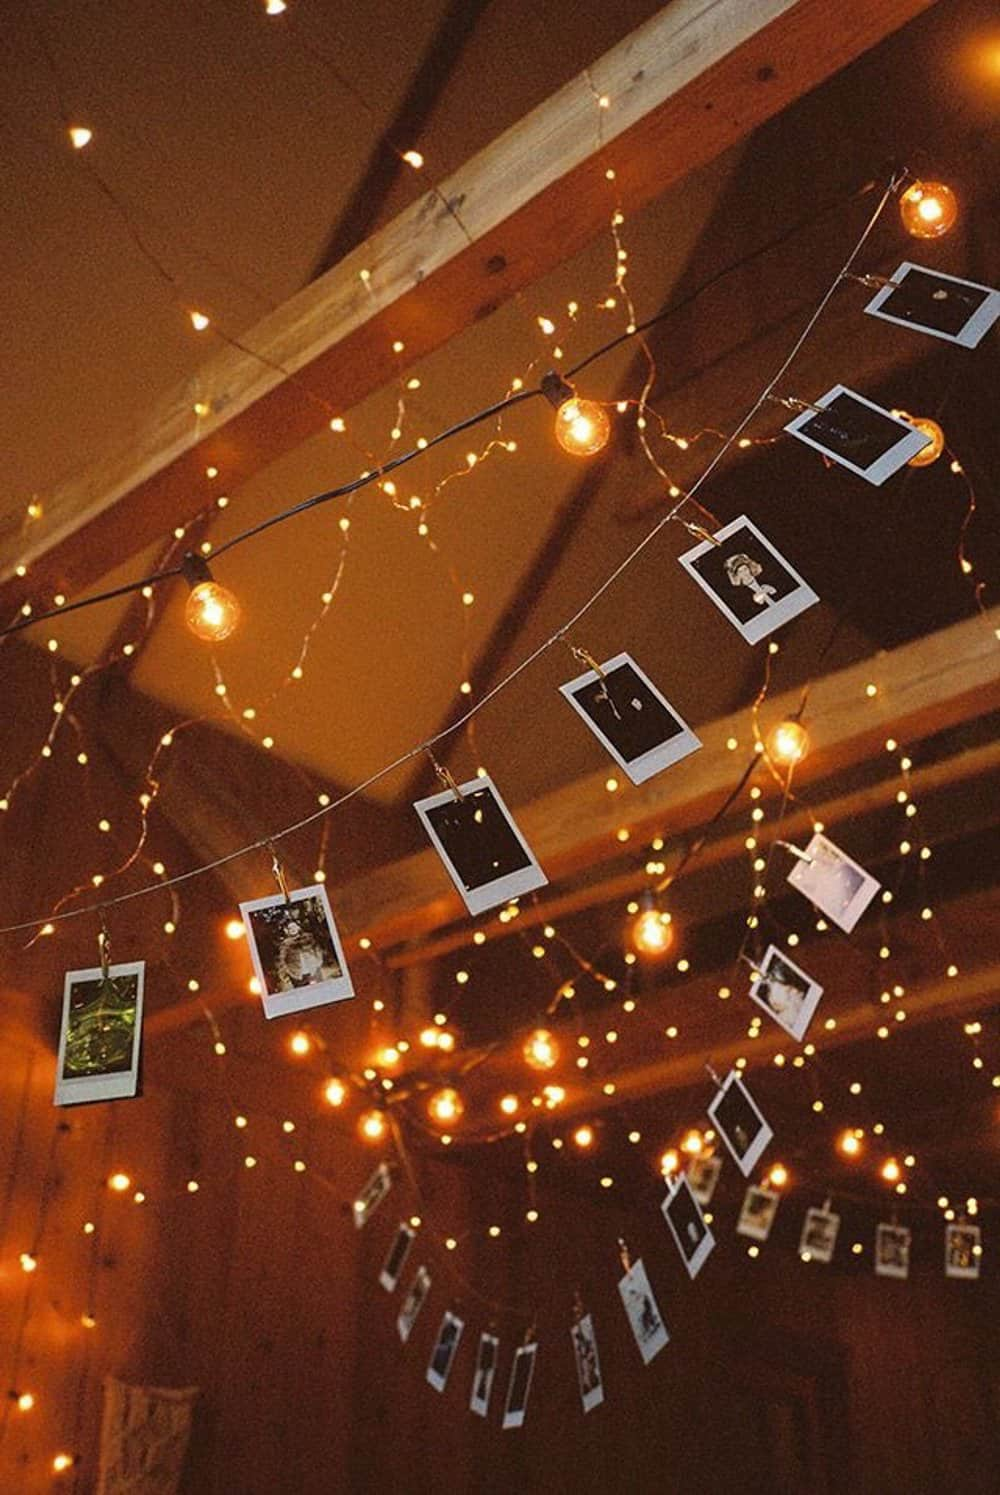 Memorable photos in tandem with an LED garland look very easy and magical